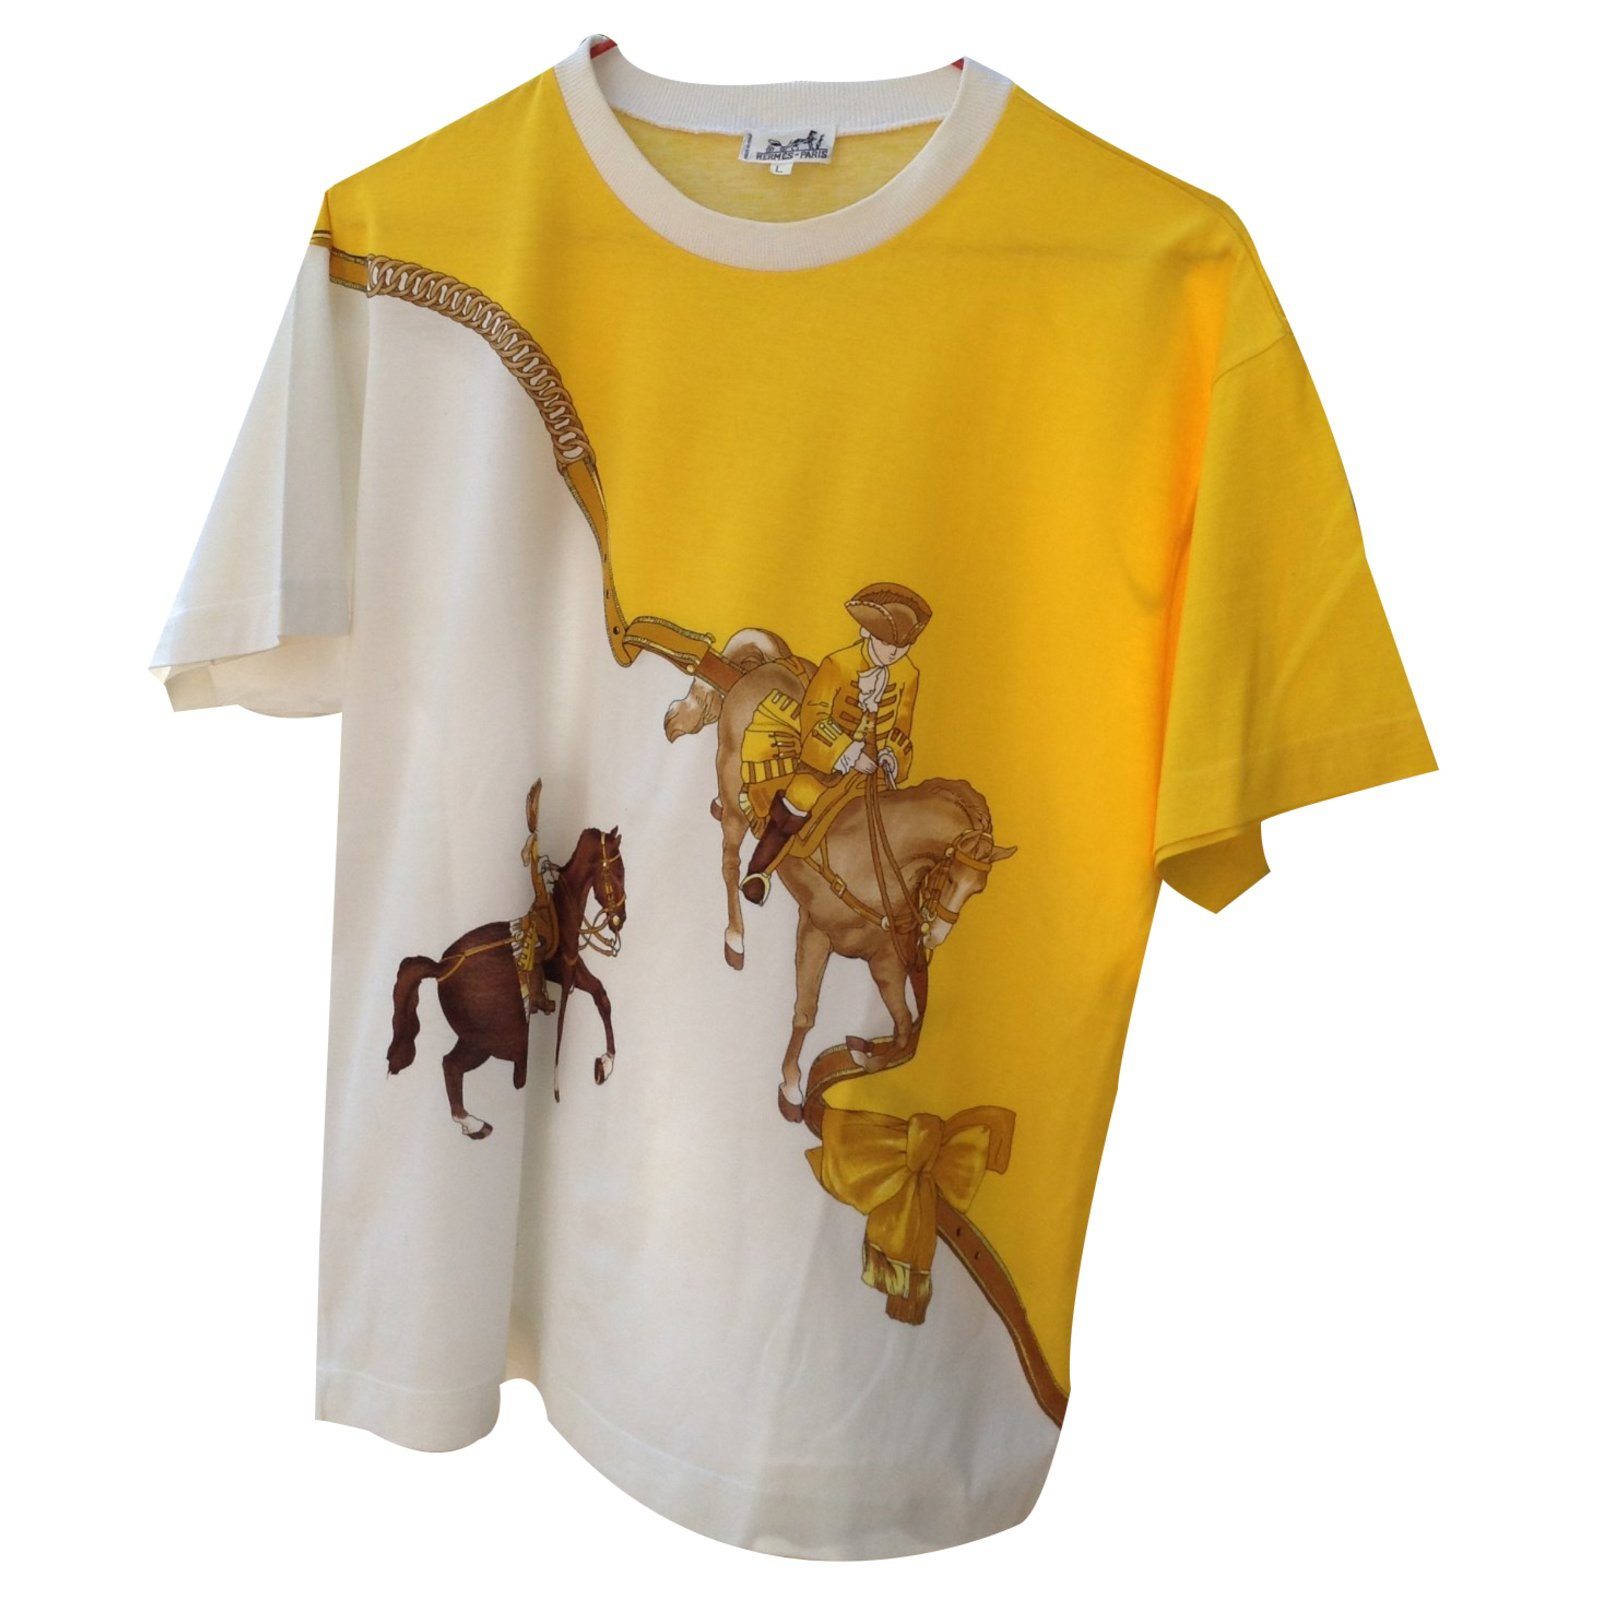 73c77026 Herm s T shirt Tops Cotton Yellow ref 22209 Joli Closet